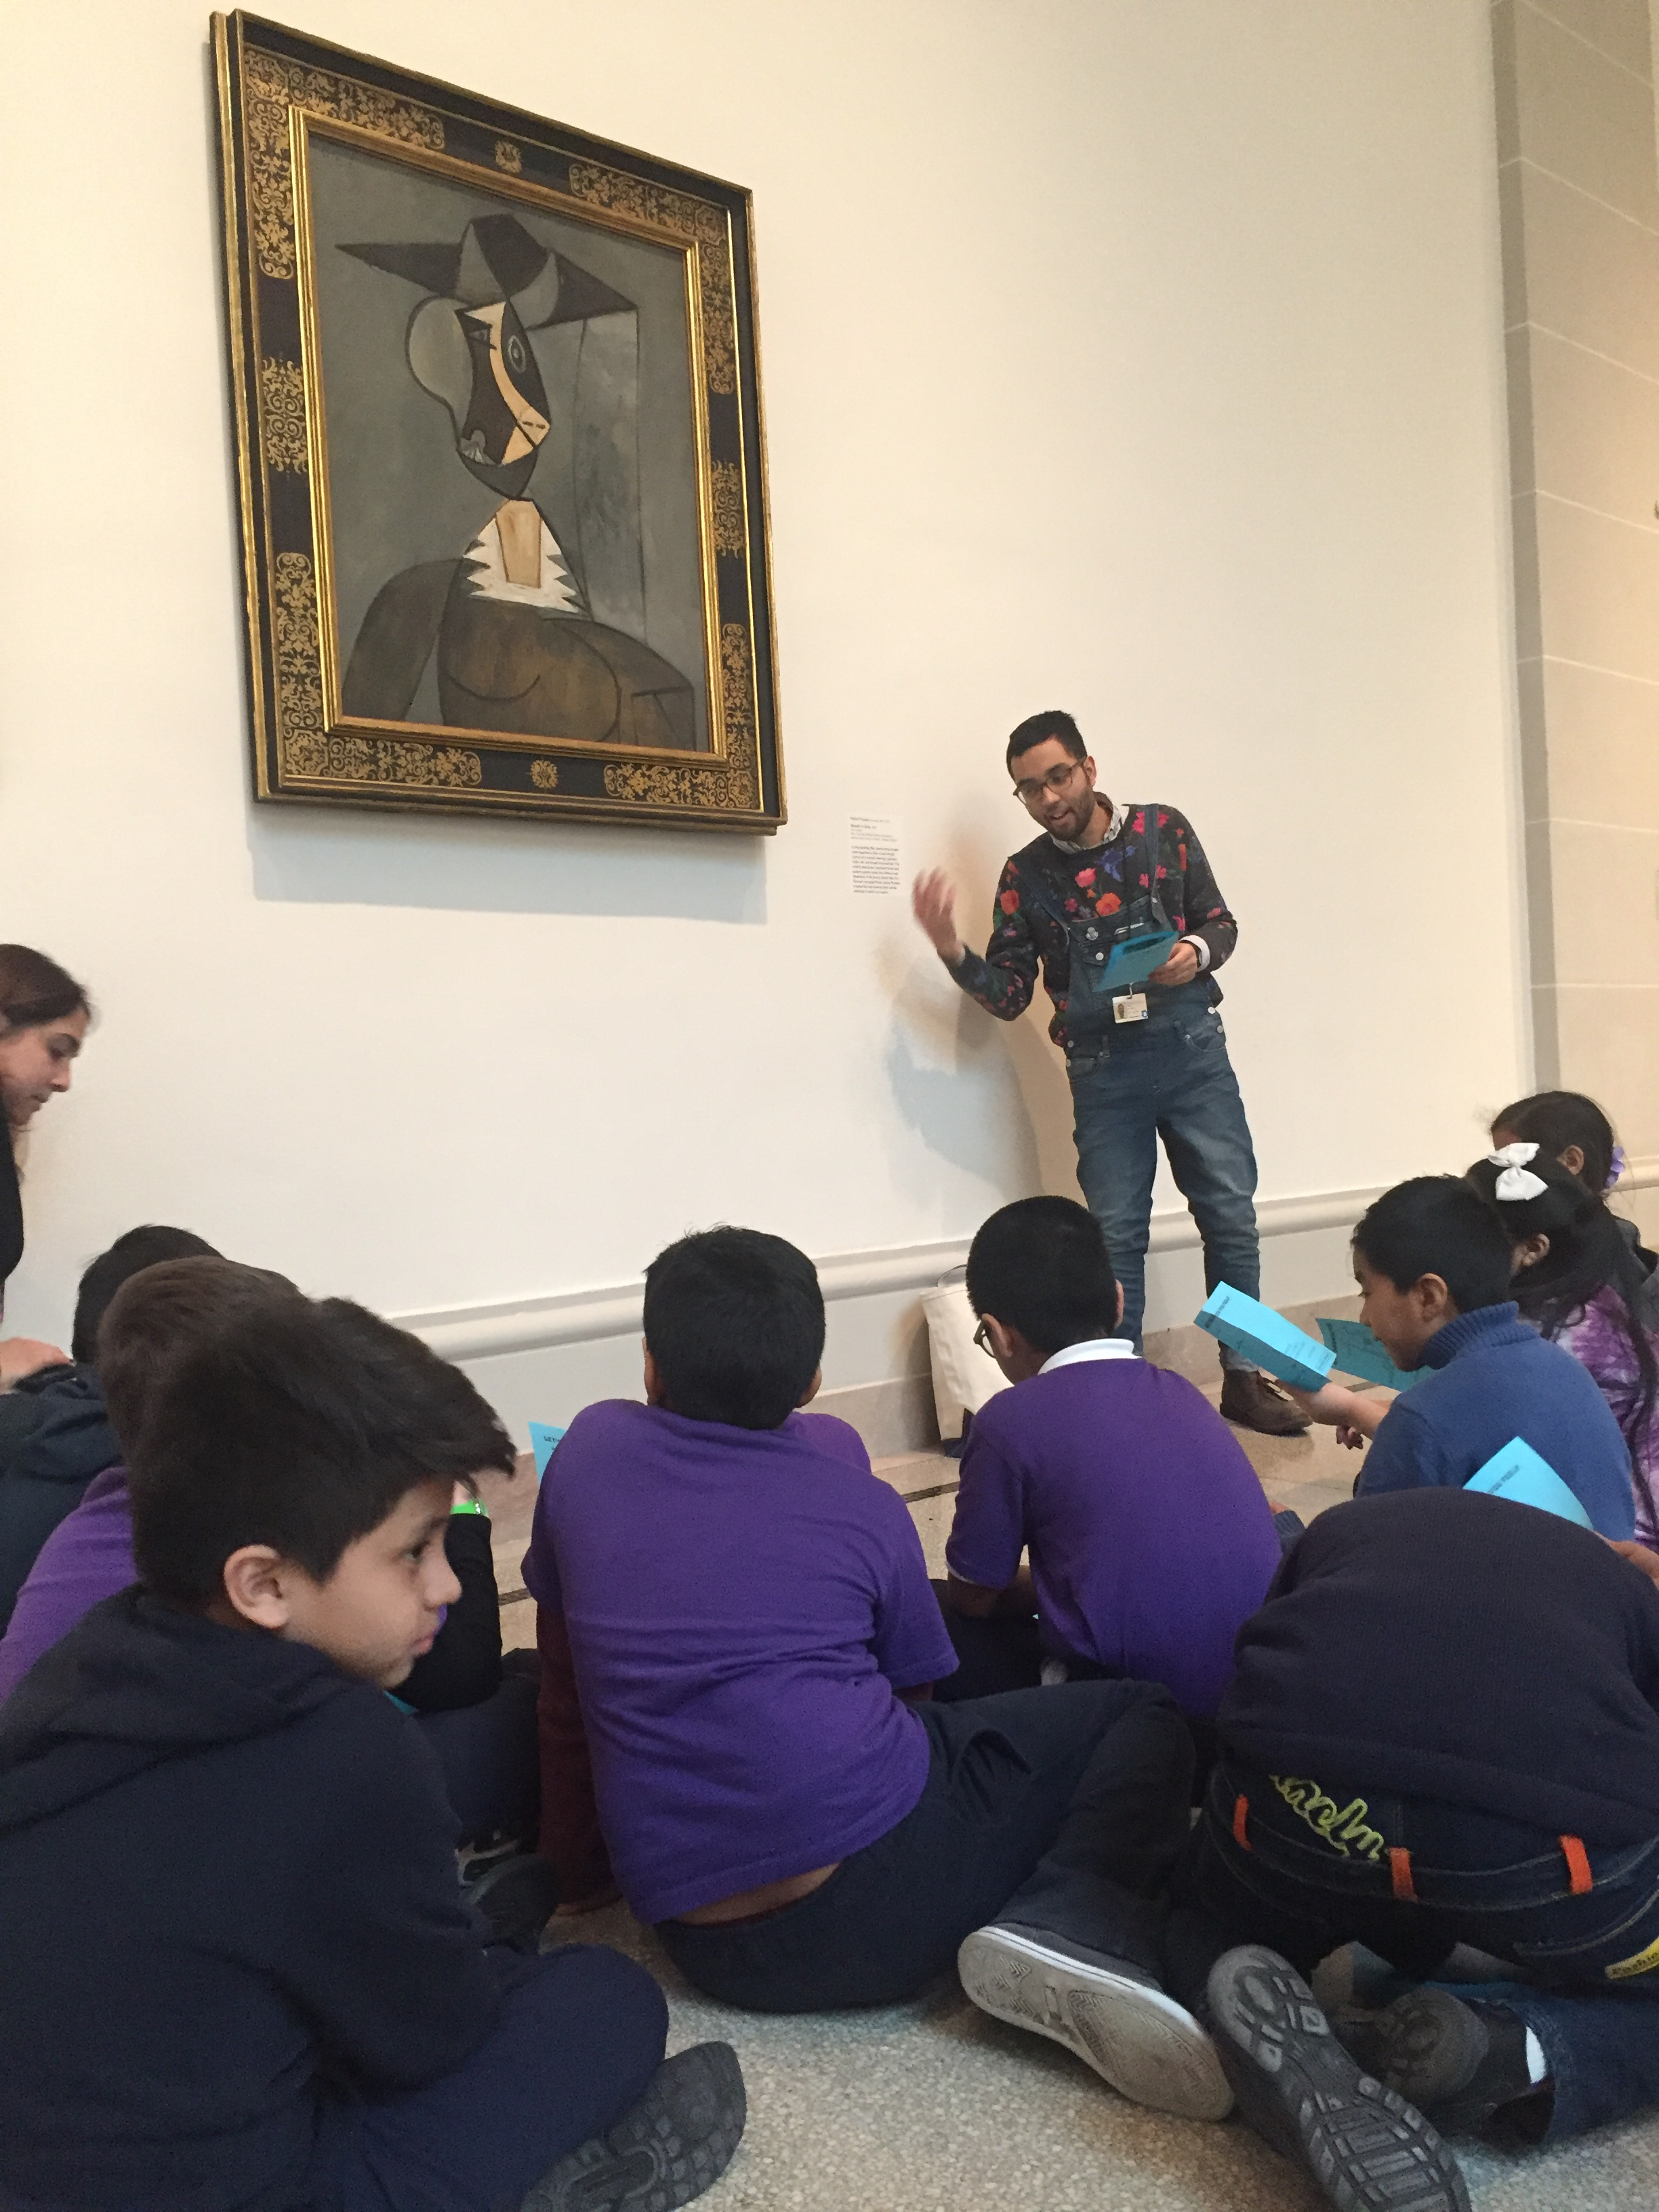 Teaching an Educator Led Lesson at the Brooklyn Museum, 2018. (Photo: Ximena Izquierdo Ugaz)